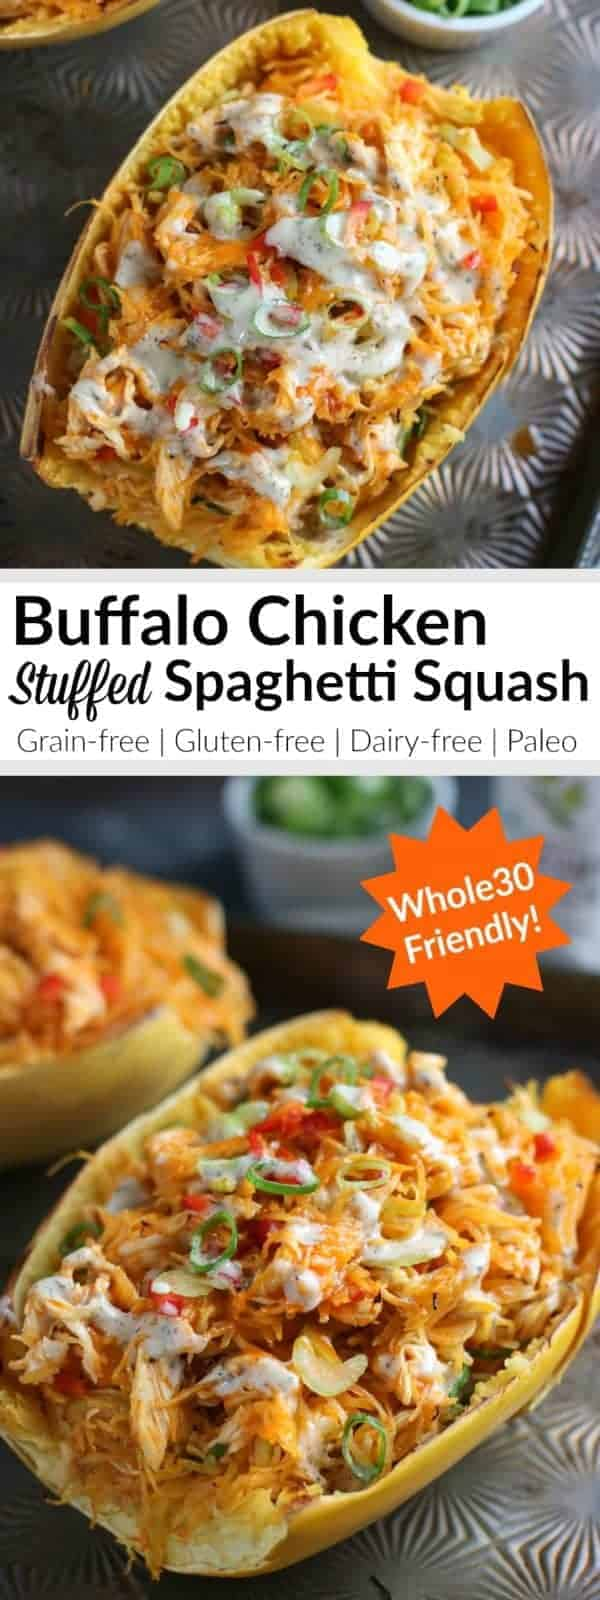 Pinterest image for Buffalo Chicken Stuffed Spaghetti Squash